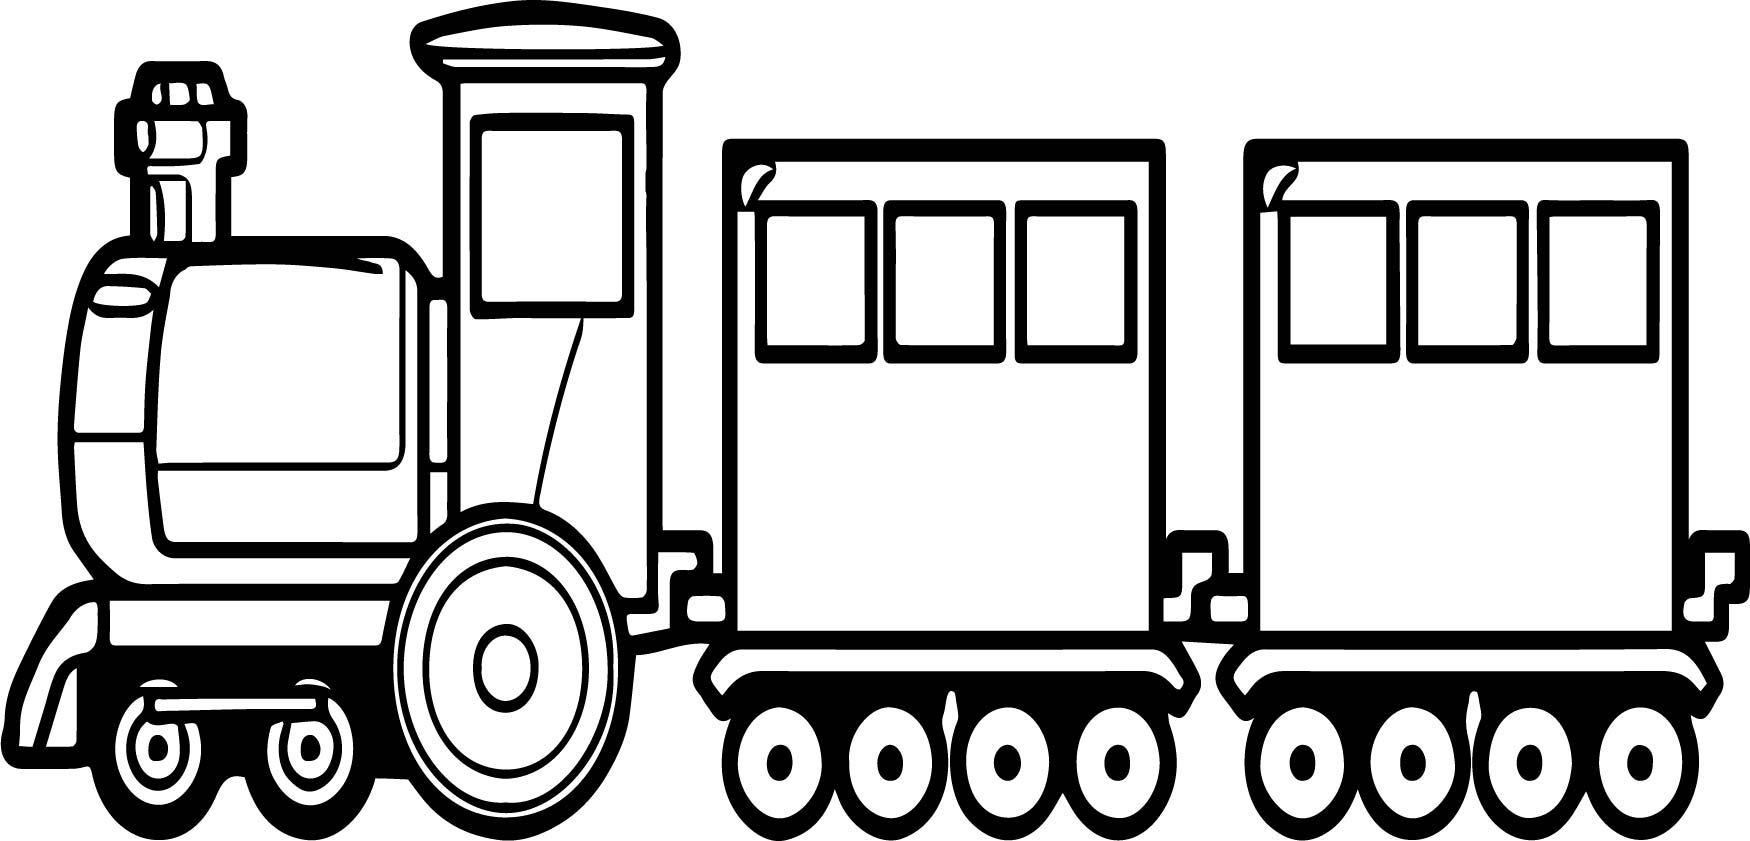 go train coloring page